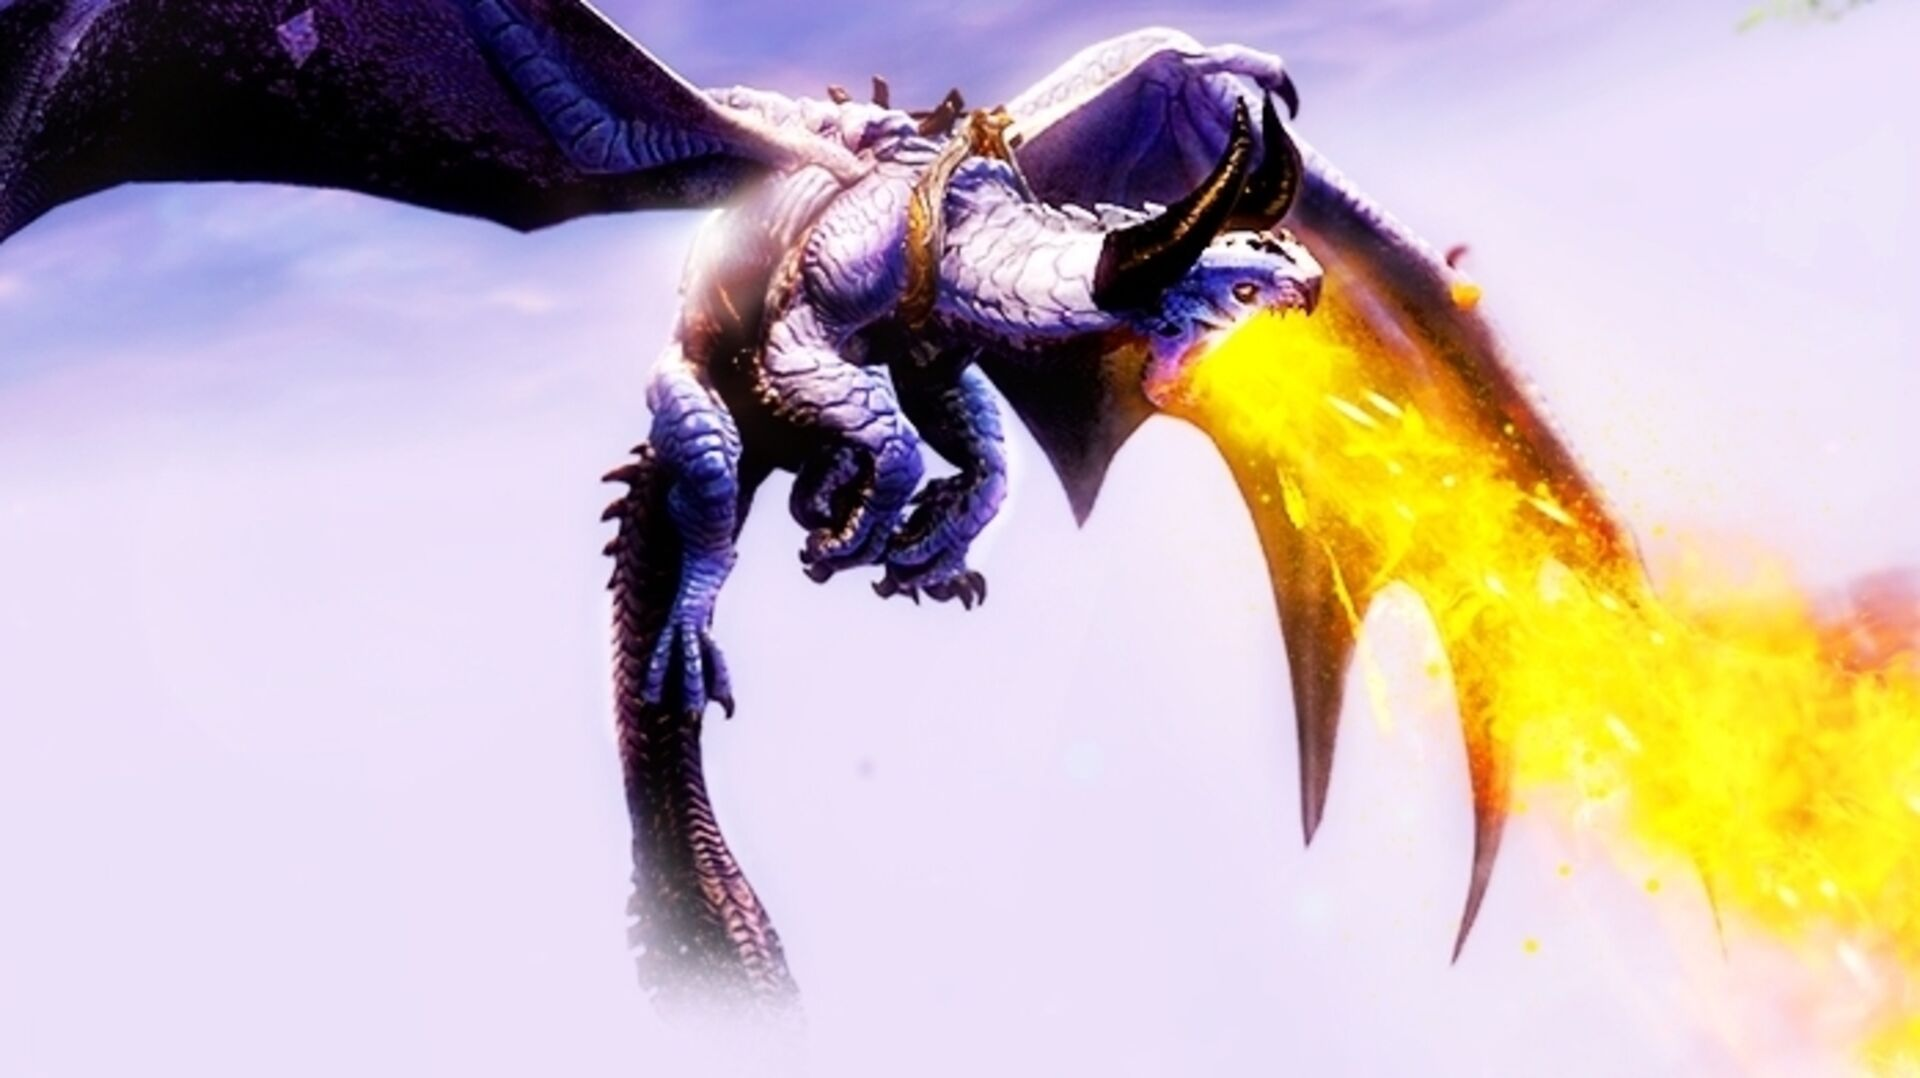 Guild Wars 2 reveals a second flying mount: a dragon, the